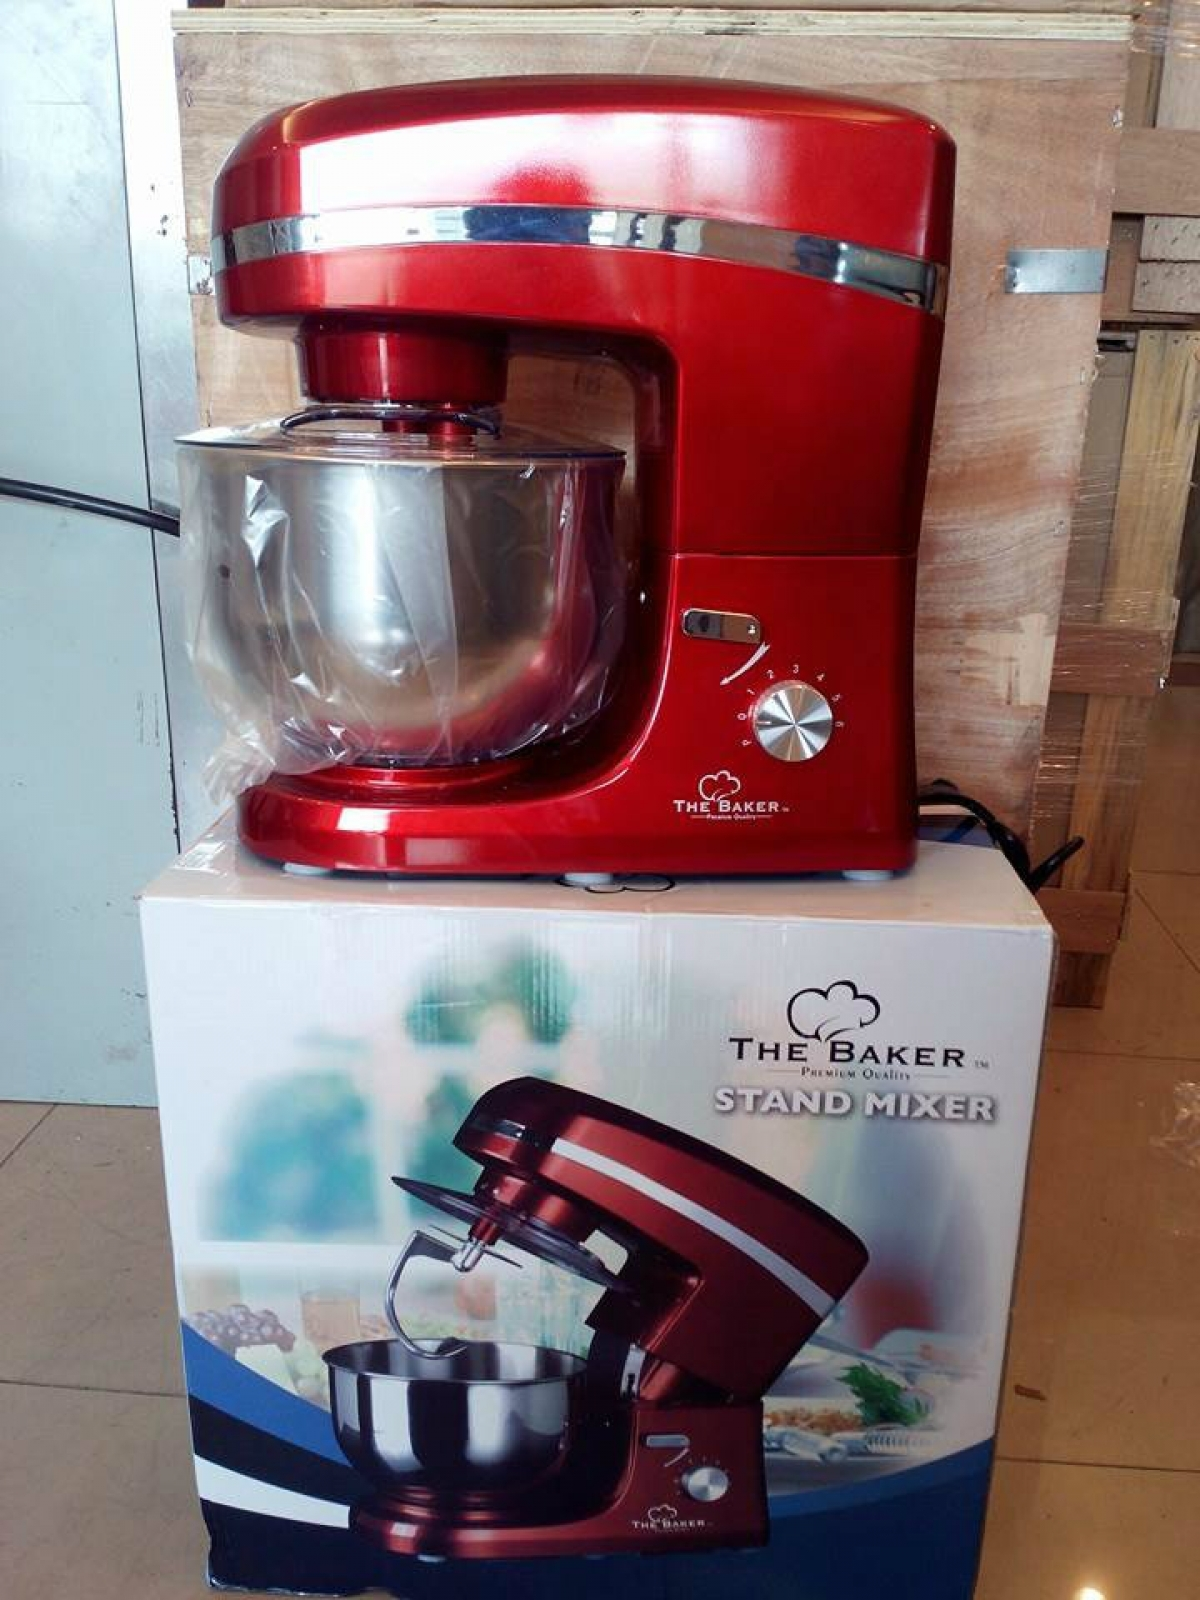 Simple Exhibition Stand Mixer : The baker w home kitchen stand mixer my power tools